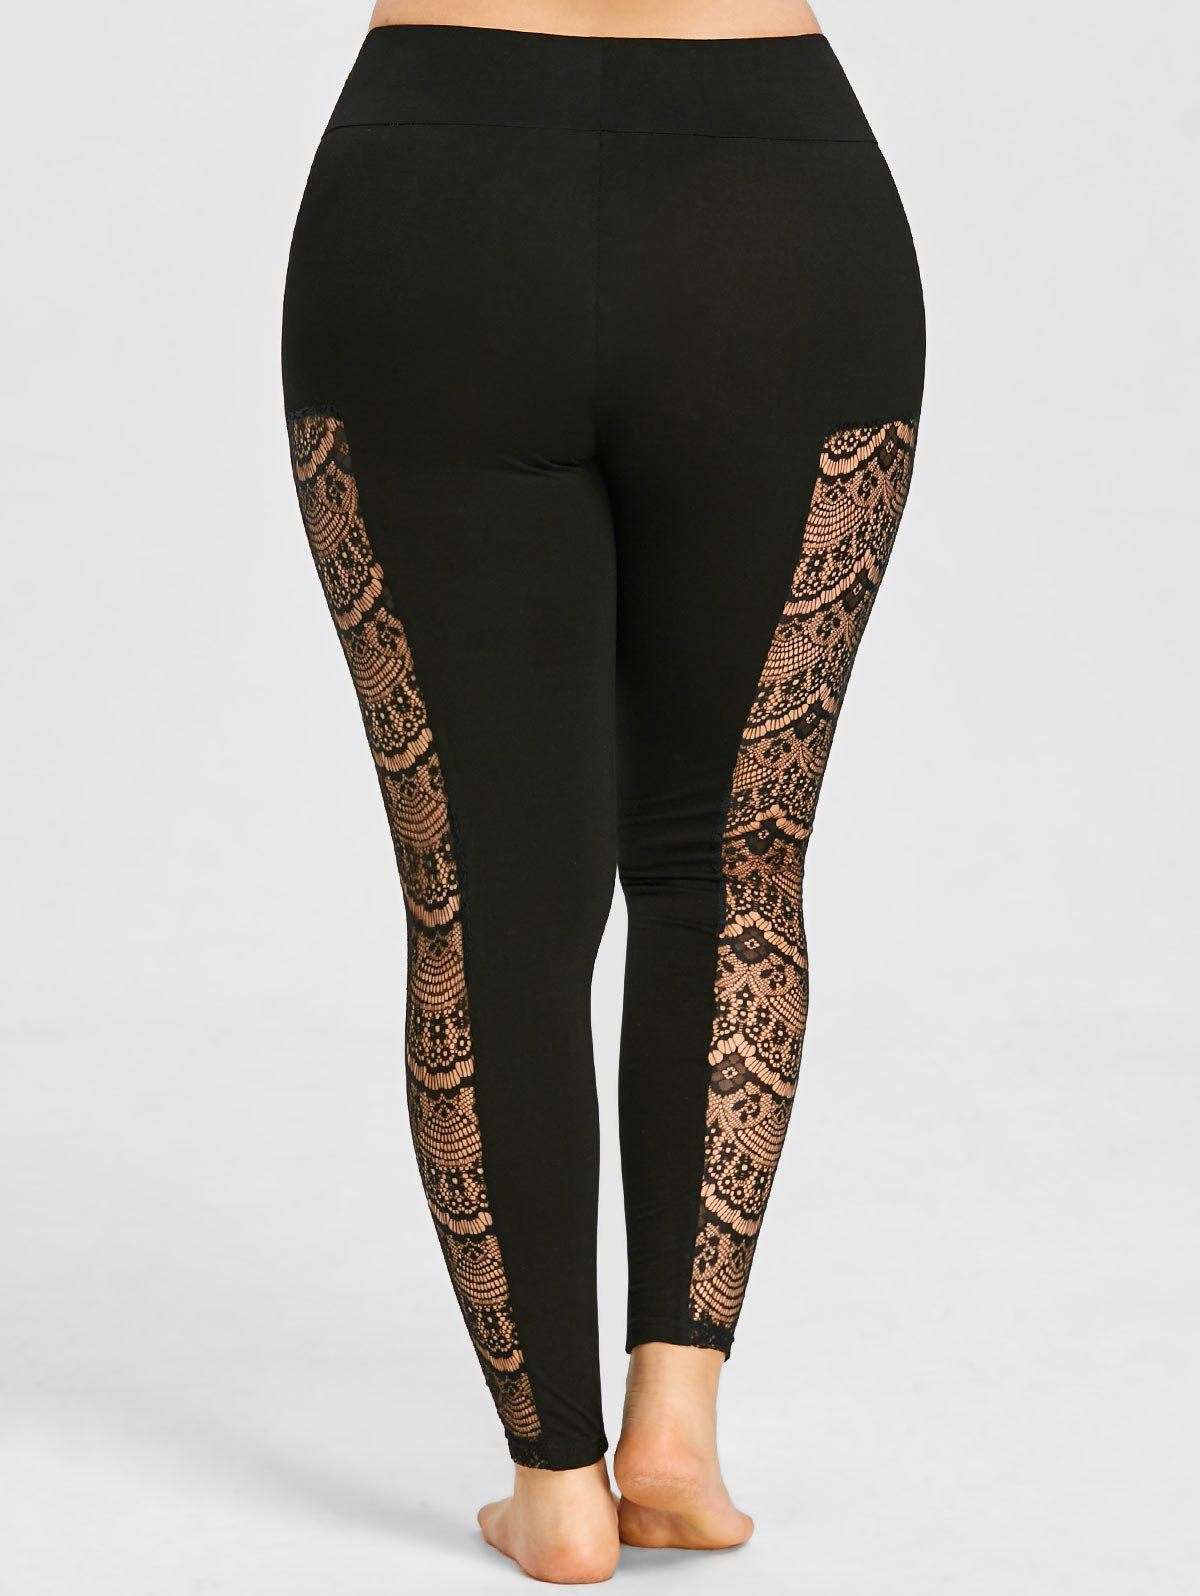 Plus Size See Thru Lace Insert Leggings - BLACK XL